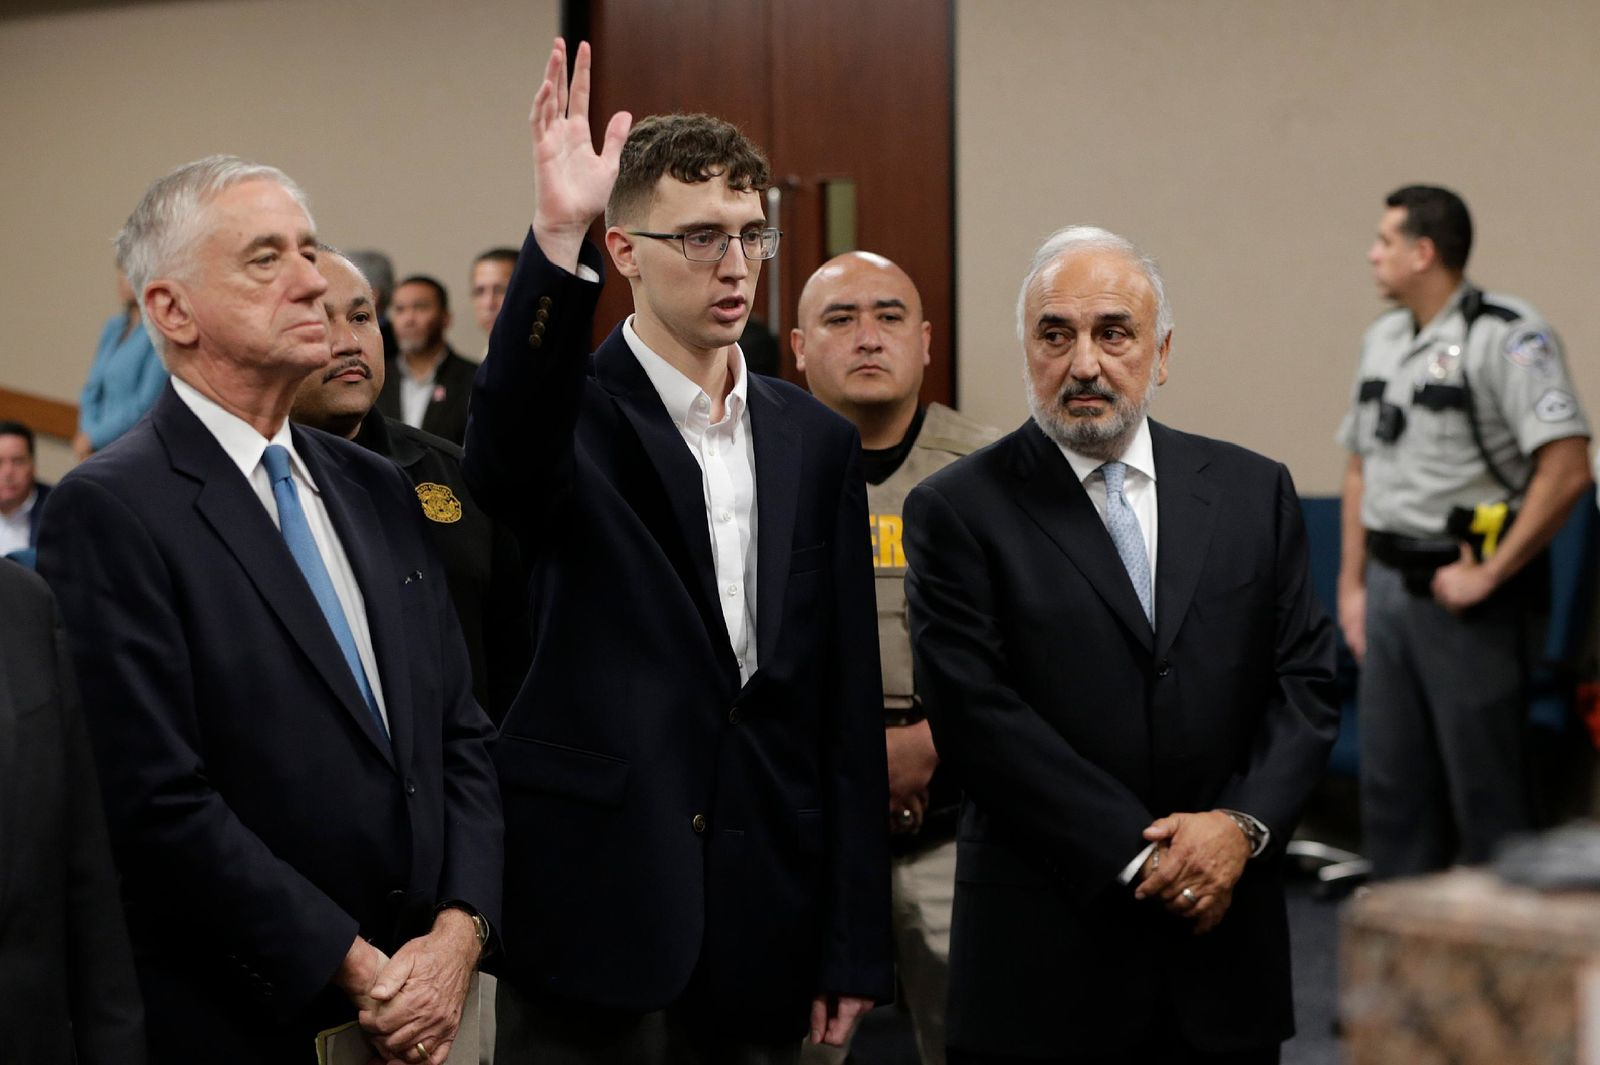 El Paso Walmart shooting suspect Patrick Crusius is arraigned Thursday, Oct. 10, 2019 in the 409th state District Court with Judge Sam Medrano presiding. Crusius, 21, male from Allen, Texas, stands accused of killing 22 and injuring 25 in the Aug. 3, 2019, mass shooting at an East El Paso Walmart in the seventh deadliest mass shooting in modern U.S. history and third deadliest in Texas. (Mark Lambie/The El Paso Times via AP, Pool)